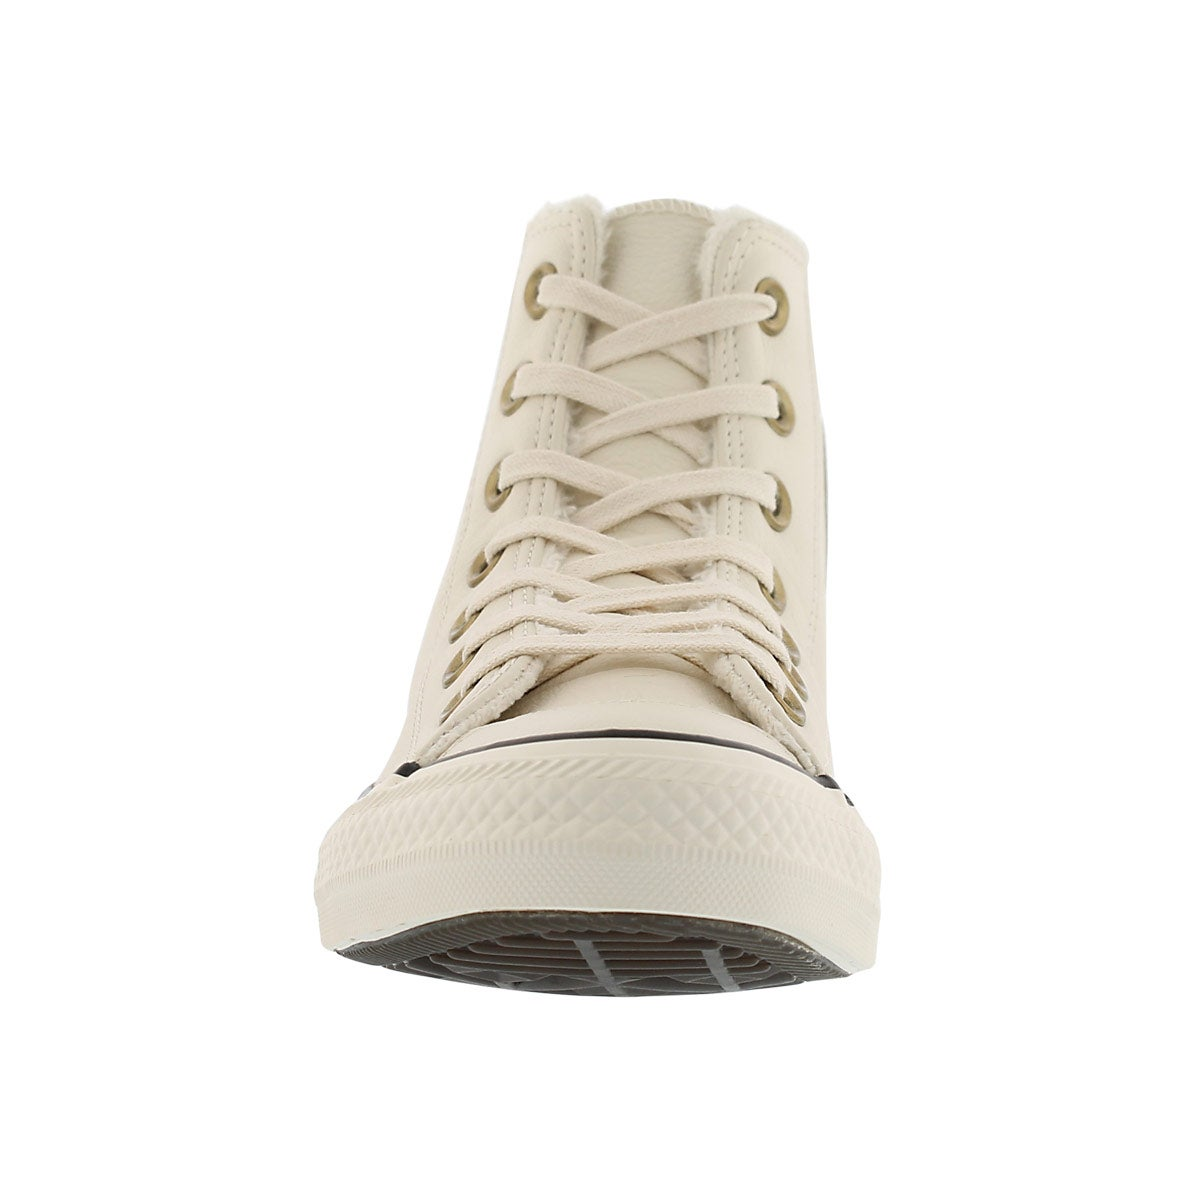 Lds CT All Star white lined hi top